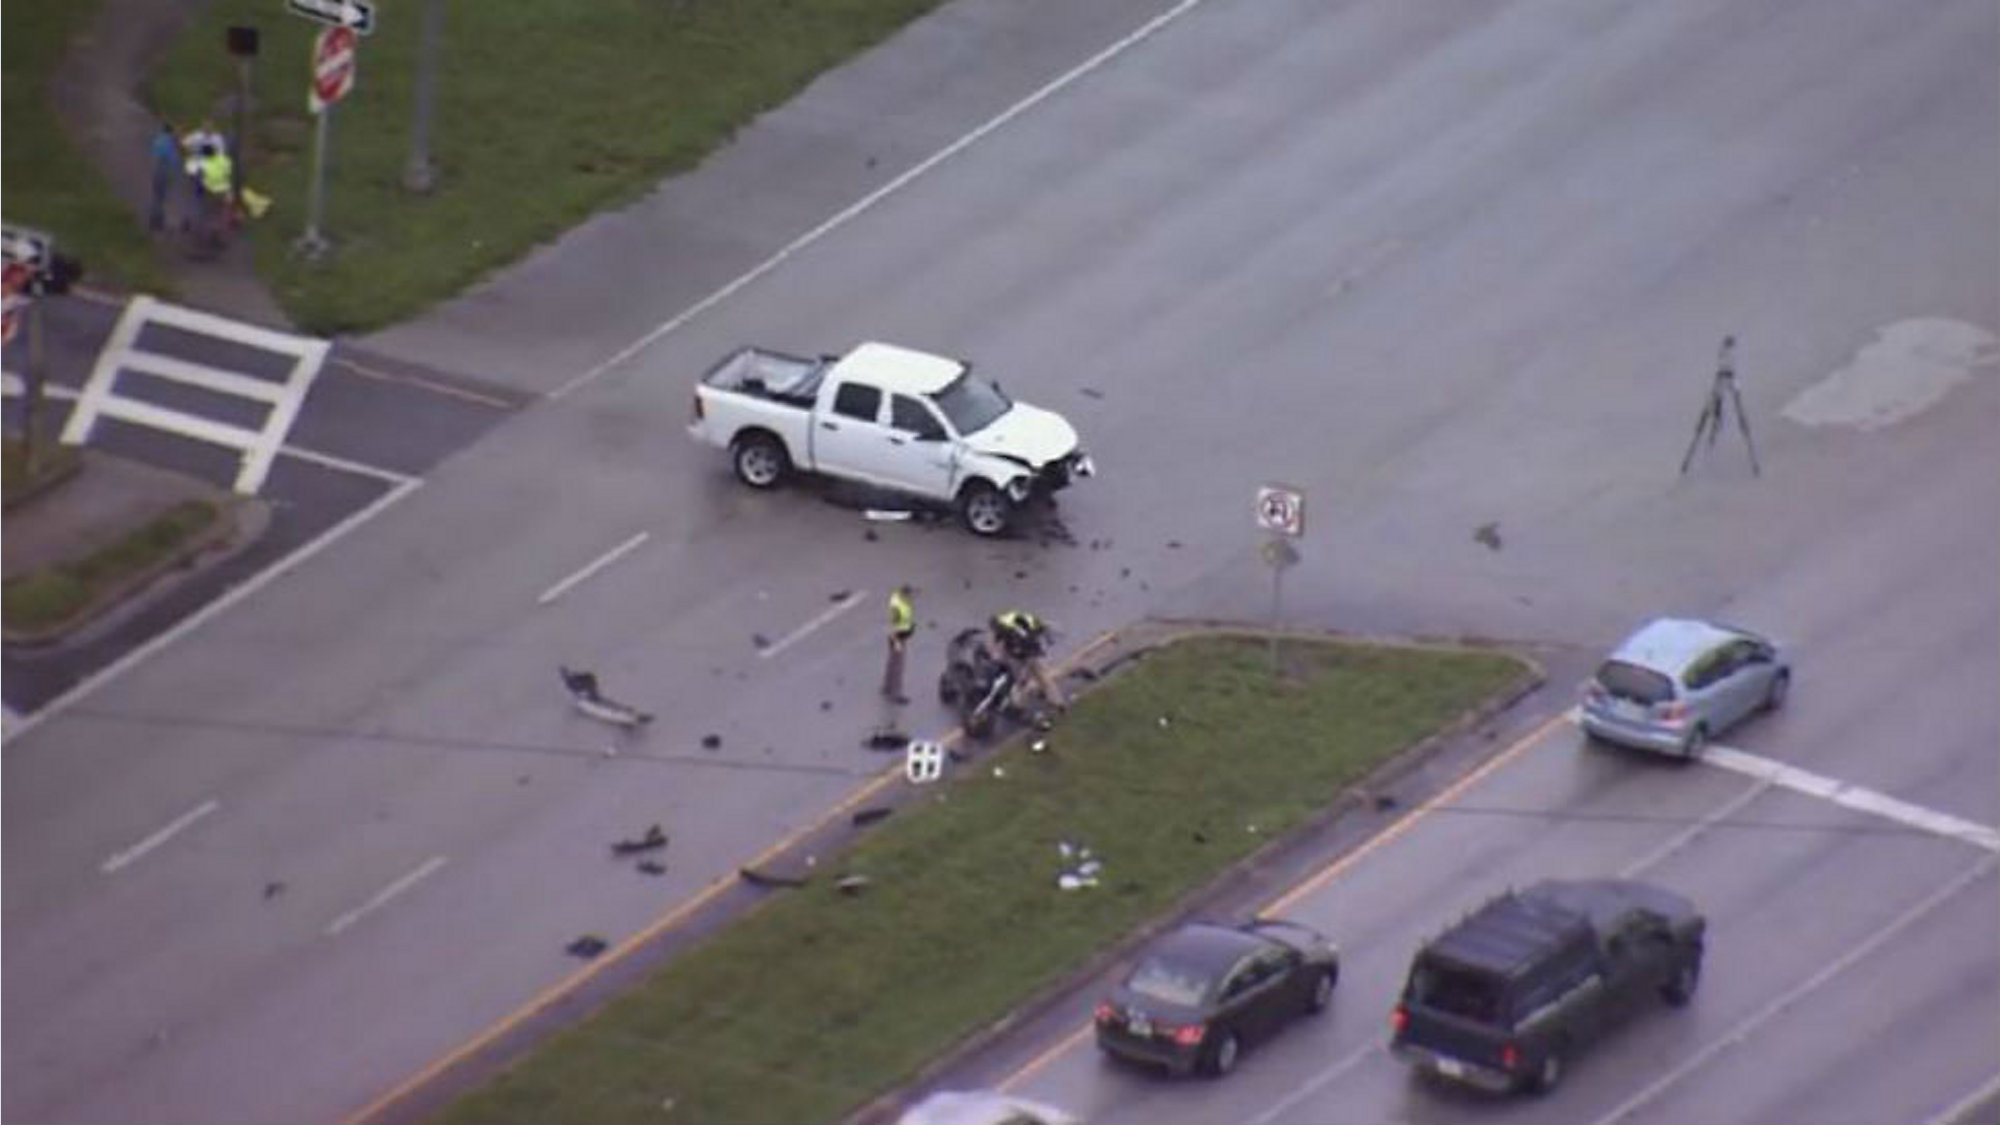 Motorcyclist killed in crash on Colonial Drive, FHP says